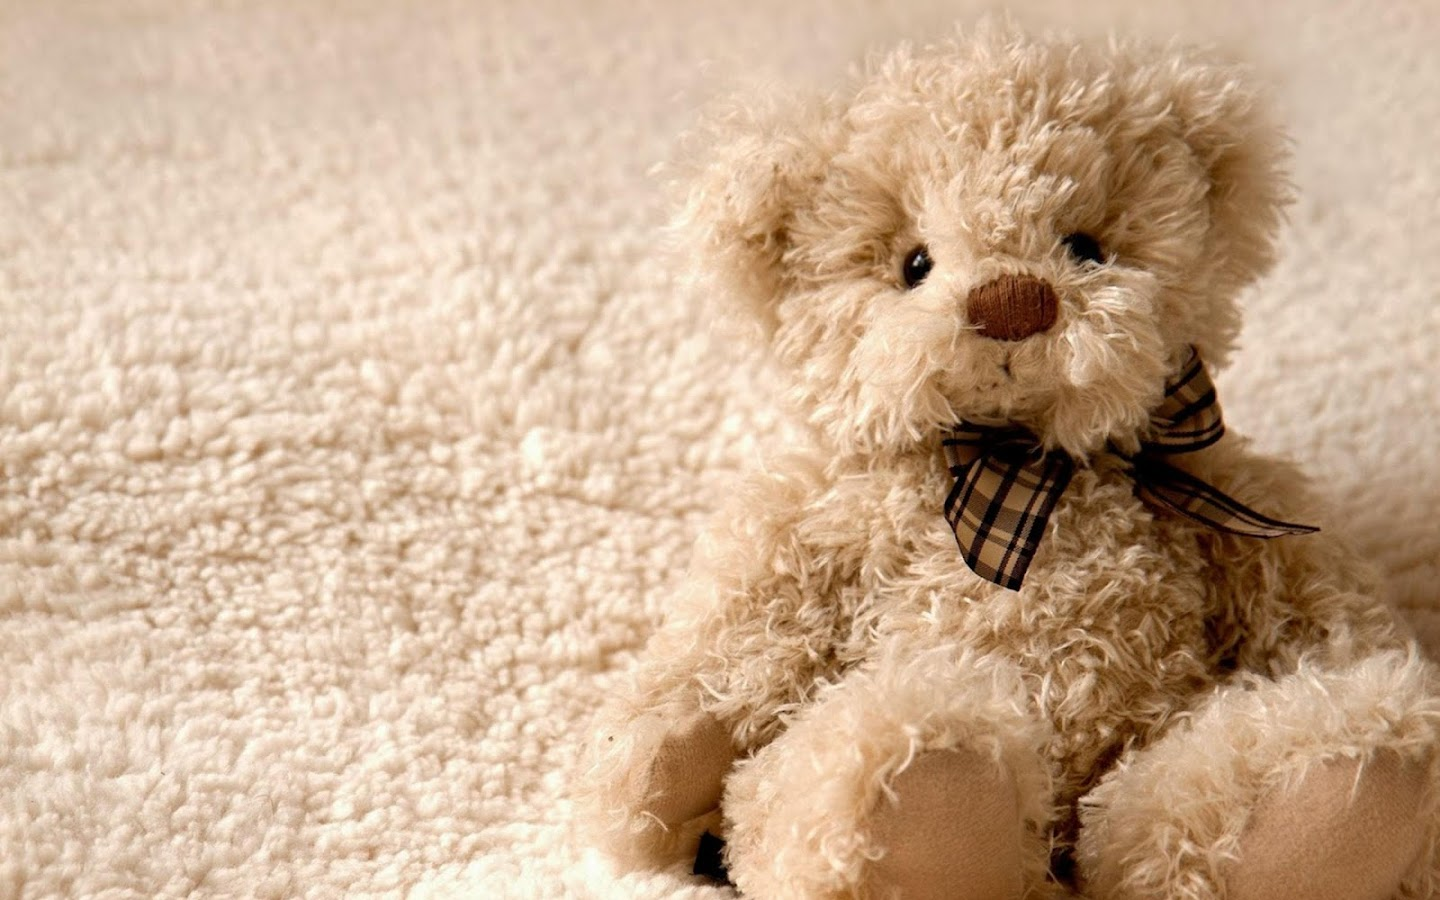 Teddy bear live wallpaper 21 apk download android teddy bear live wallpaper 21 screenshot 6 voltagebd Gallery